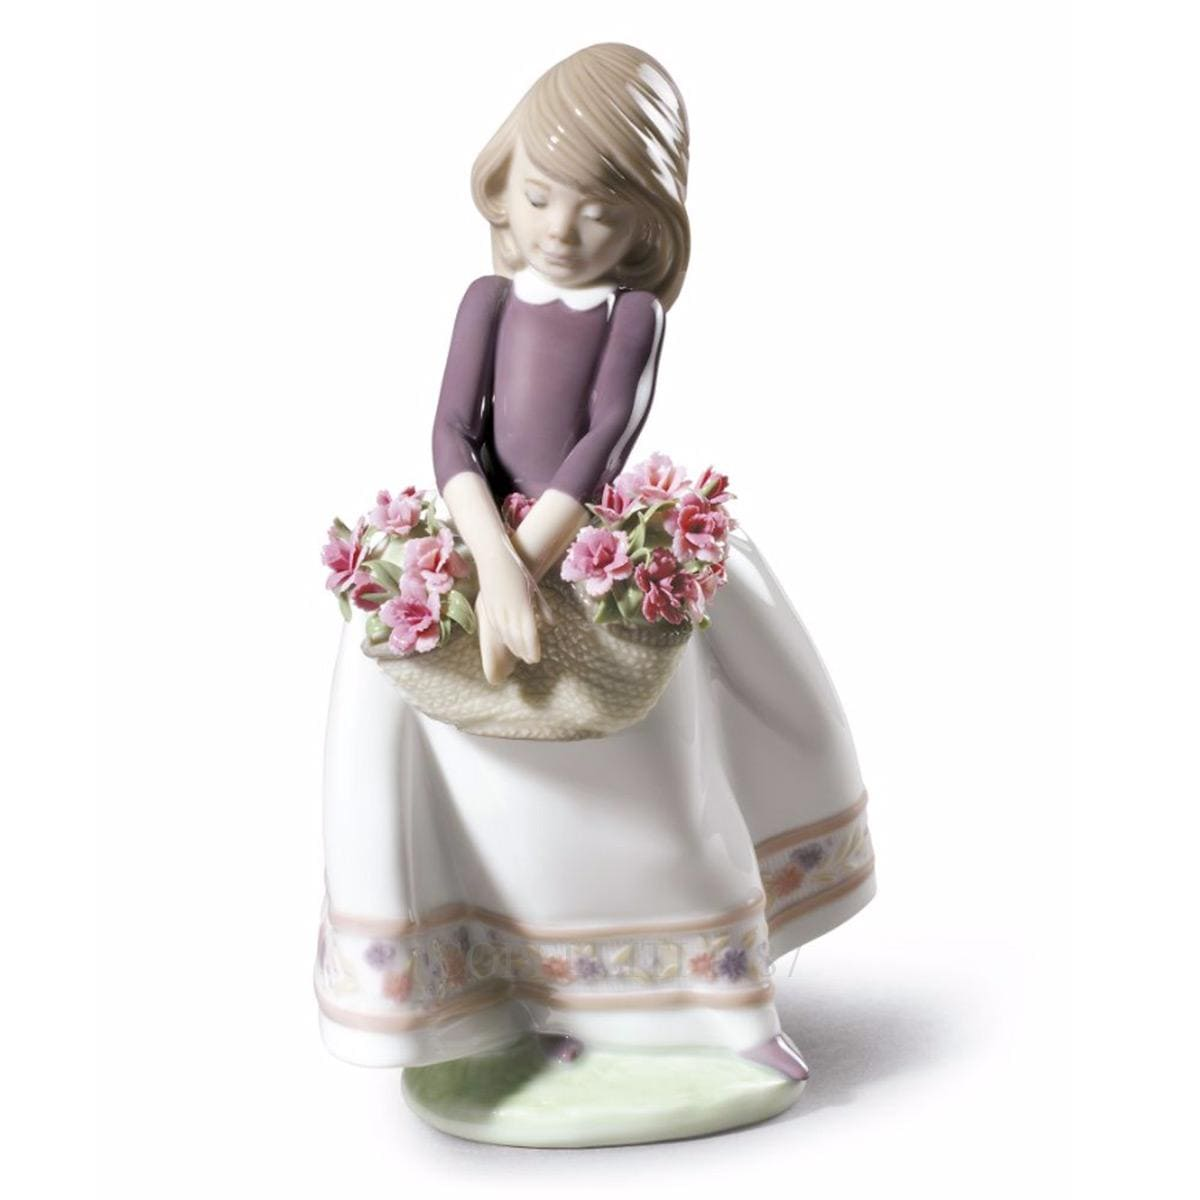 Lladró May Flowers Porcelain Figurine